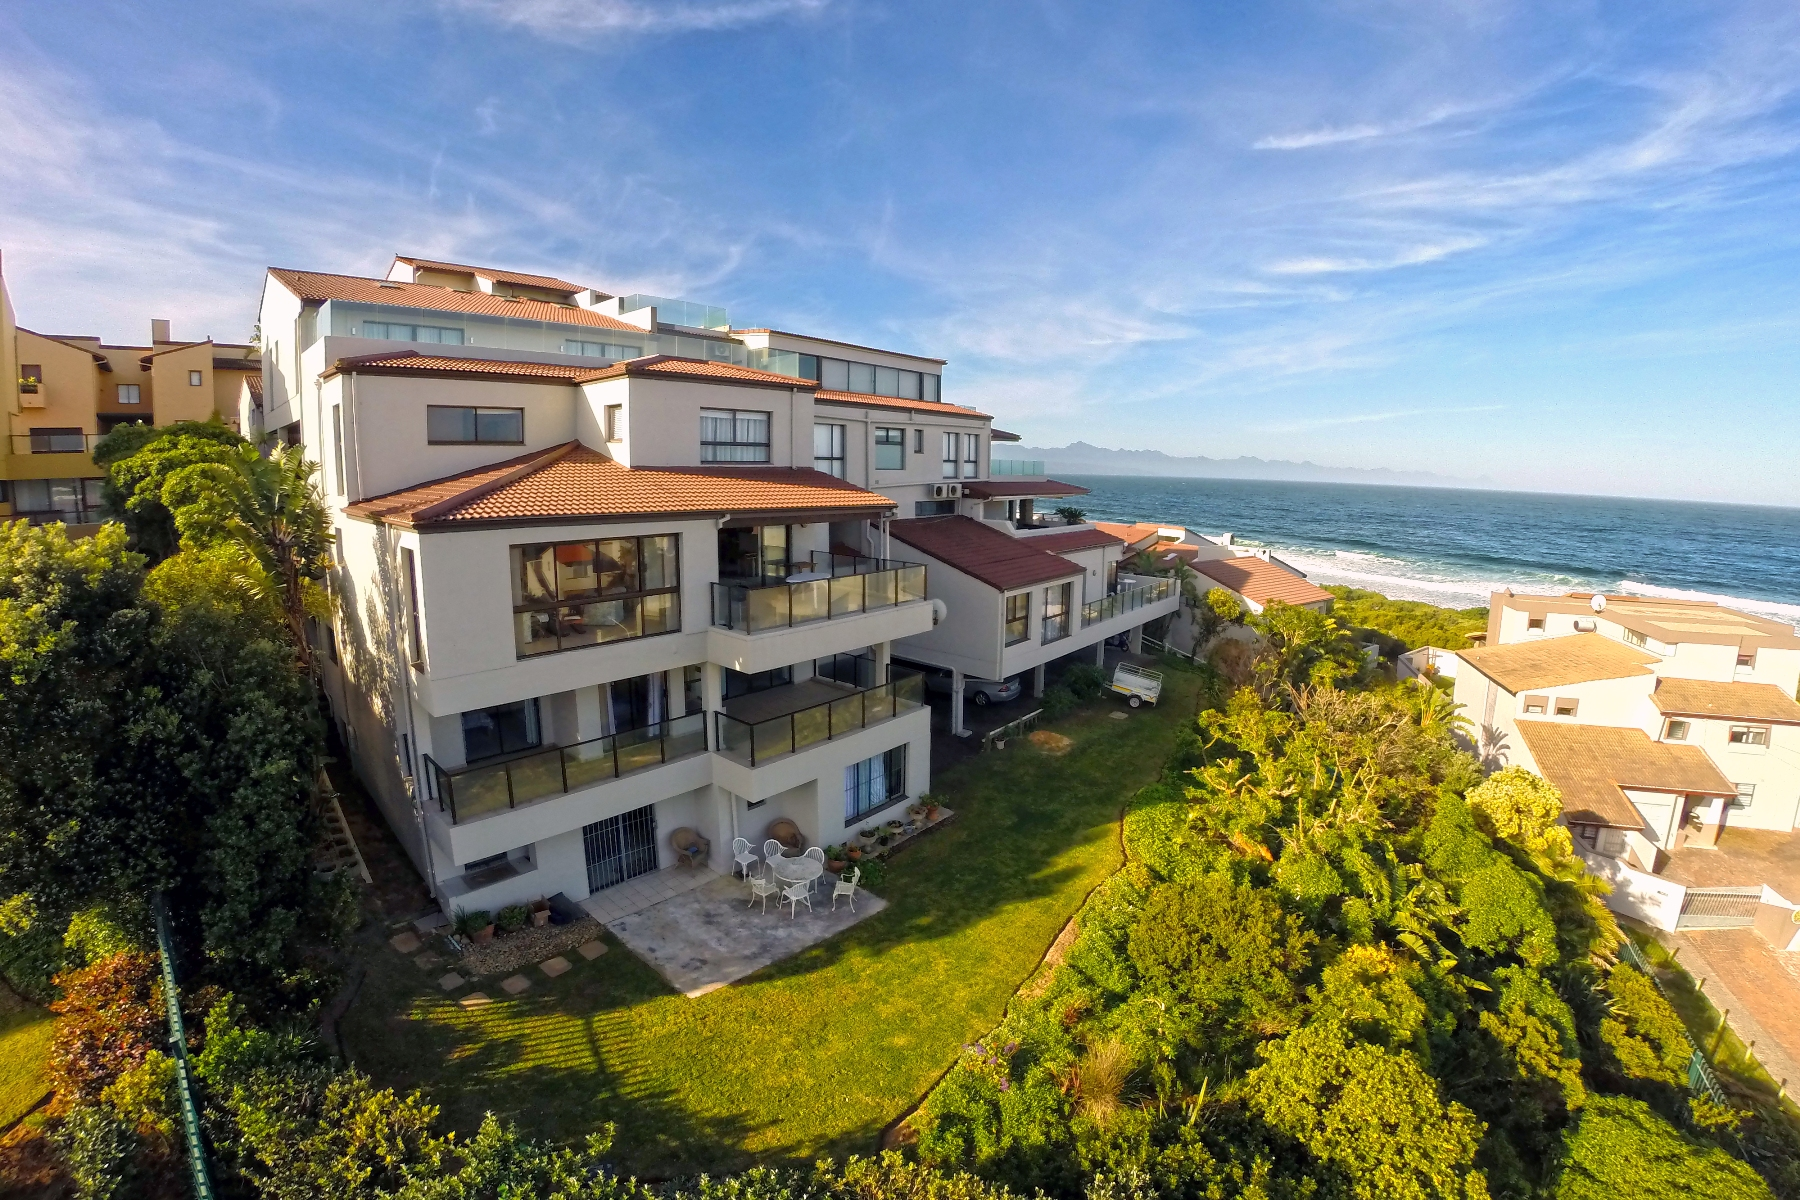 Apartment for Sale at Sea View Apartment Plettenberg Bay, Western Cape, 6600 South Africa